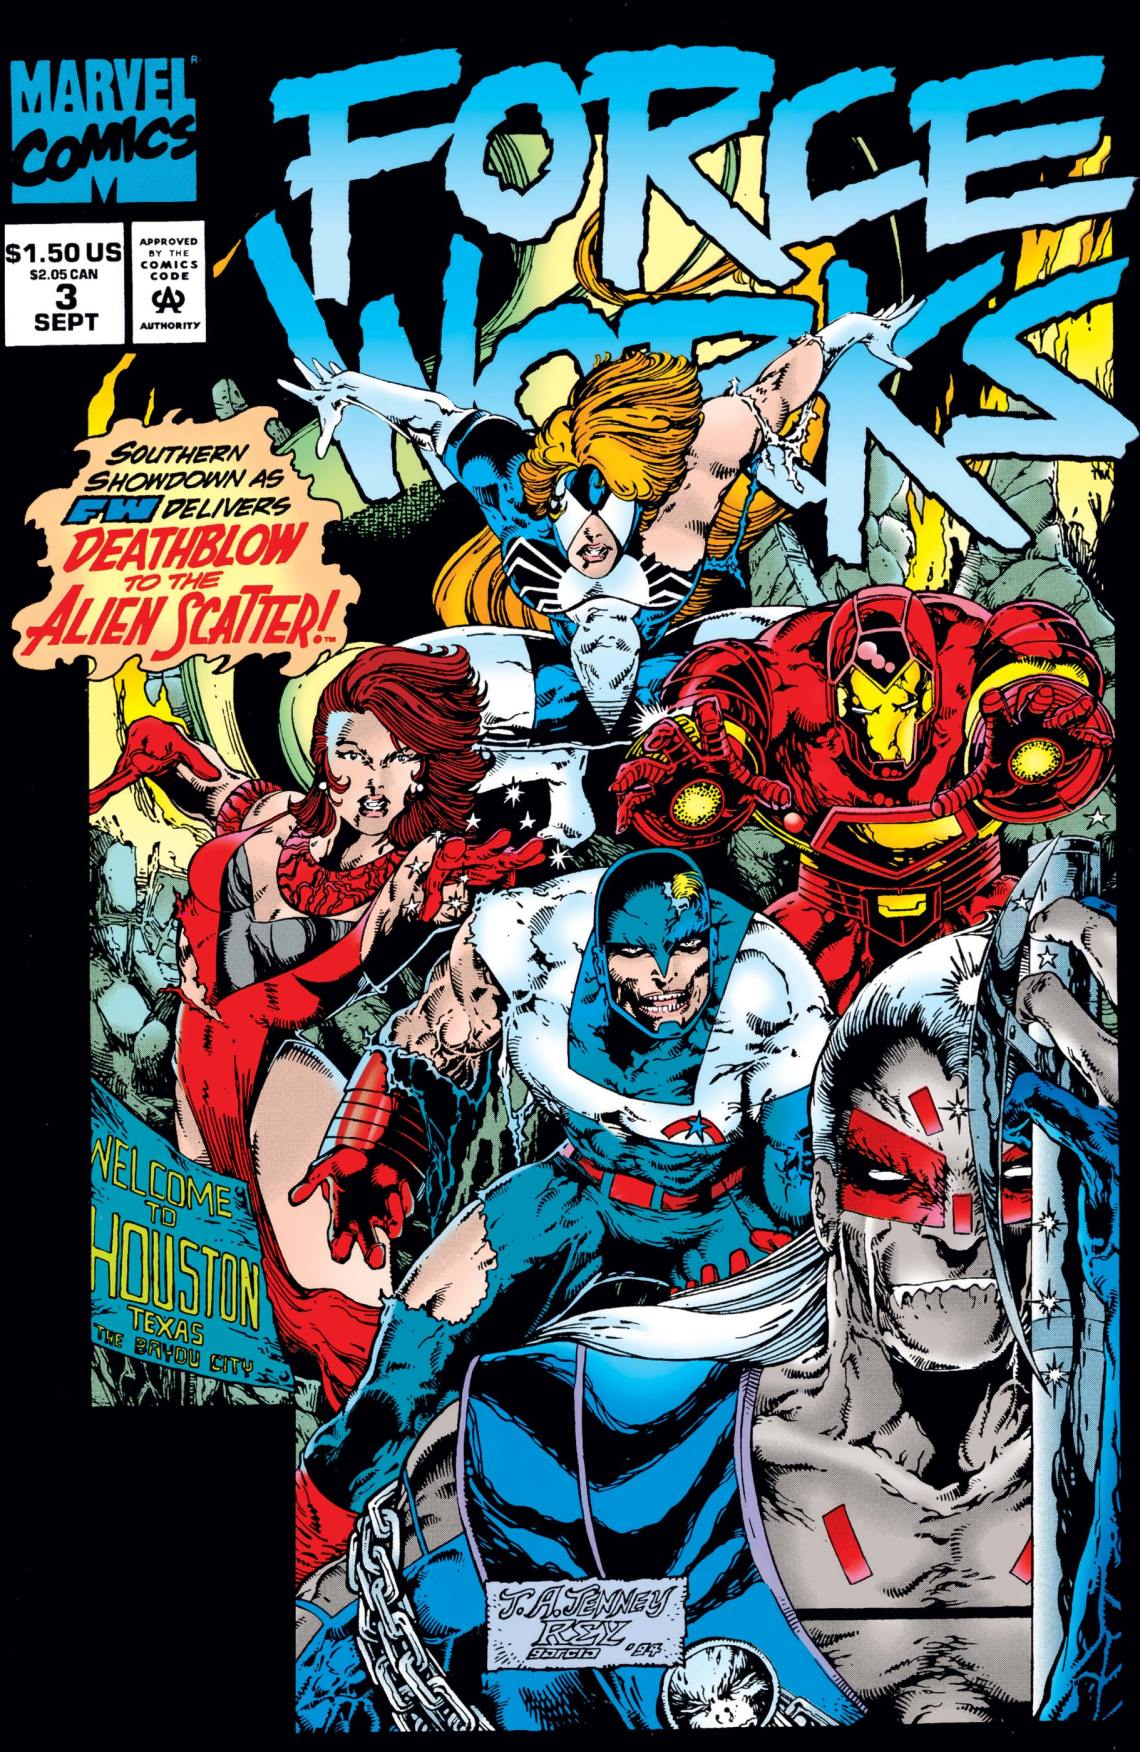 Force Works (1994) #3 | Comic Issues | Marvel